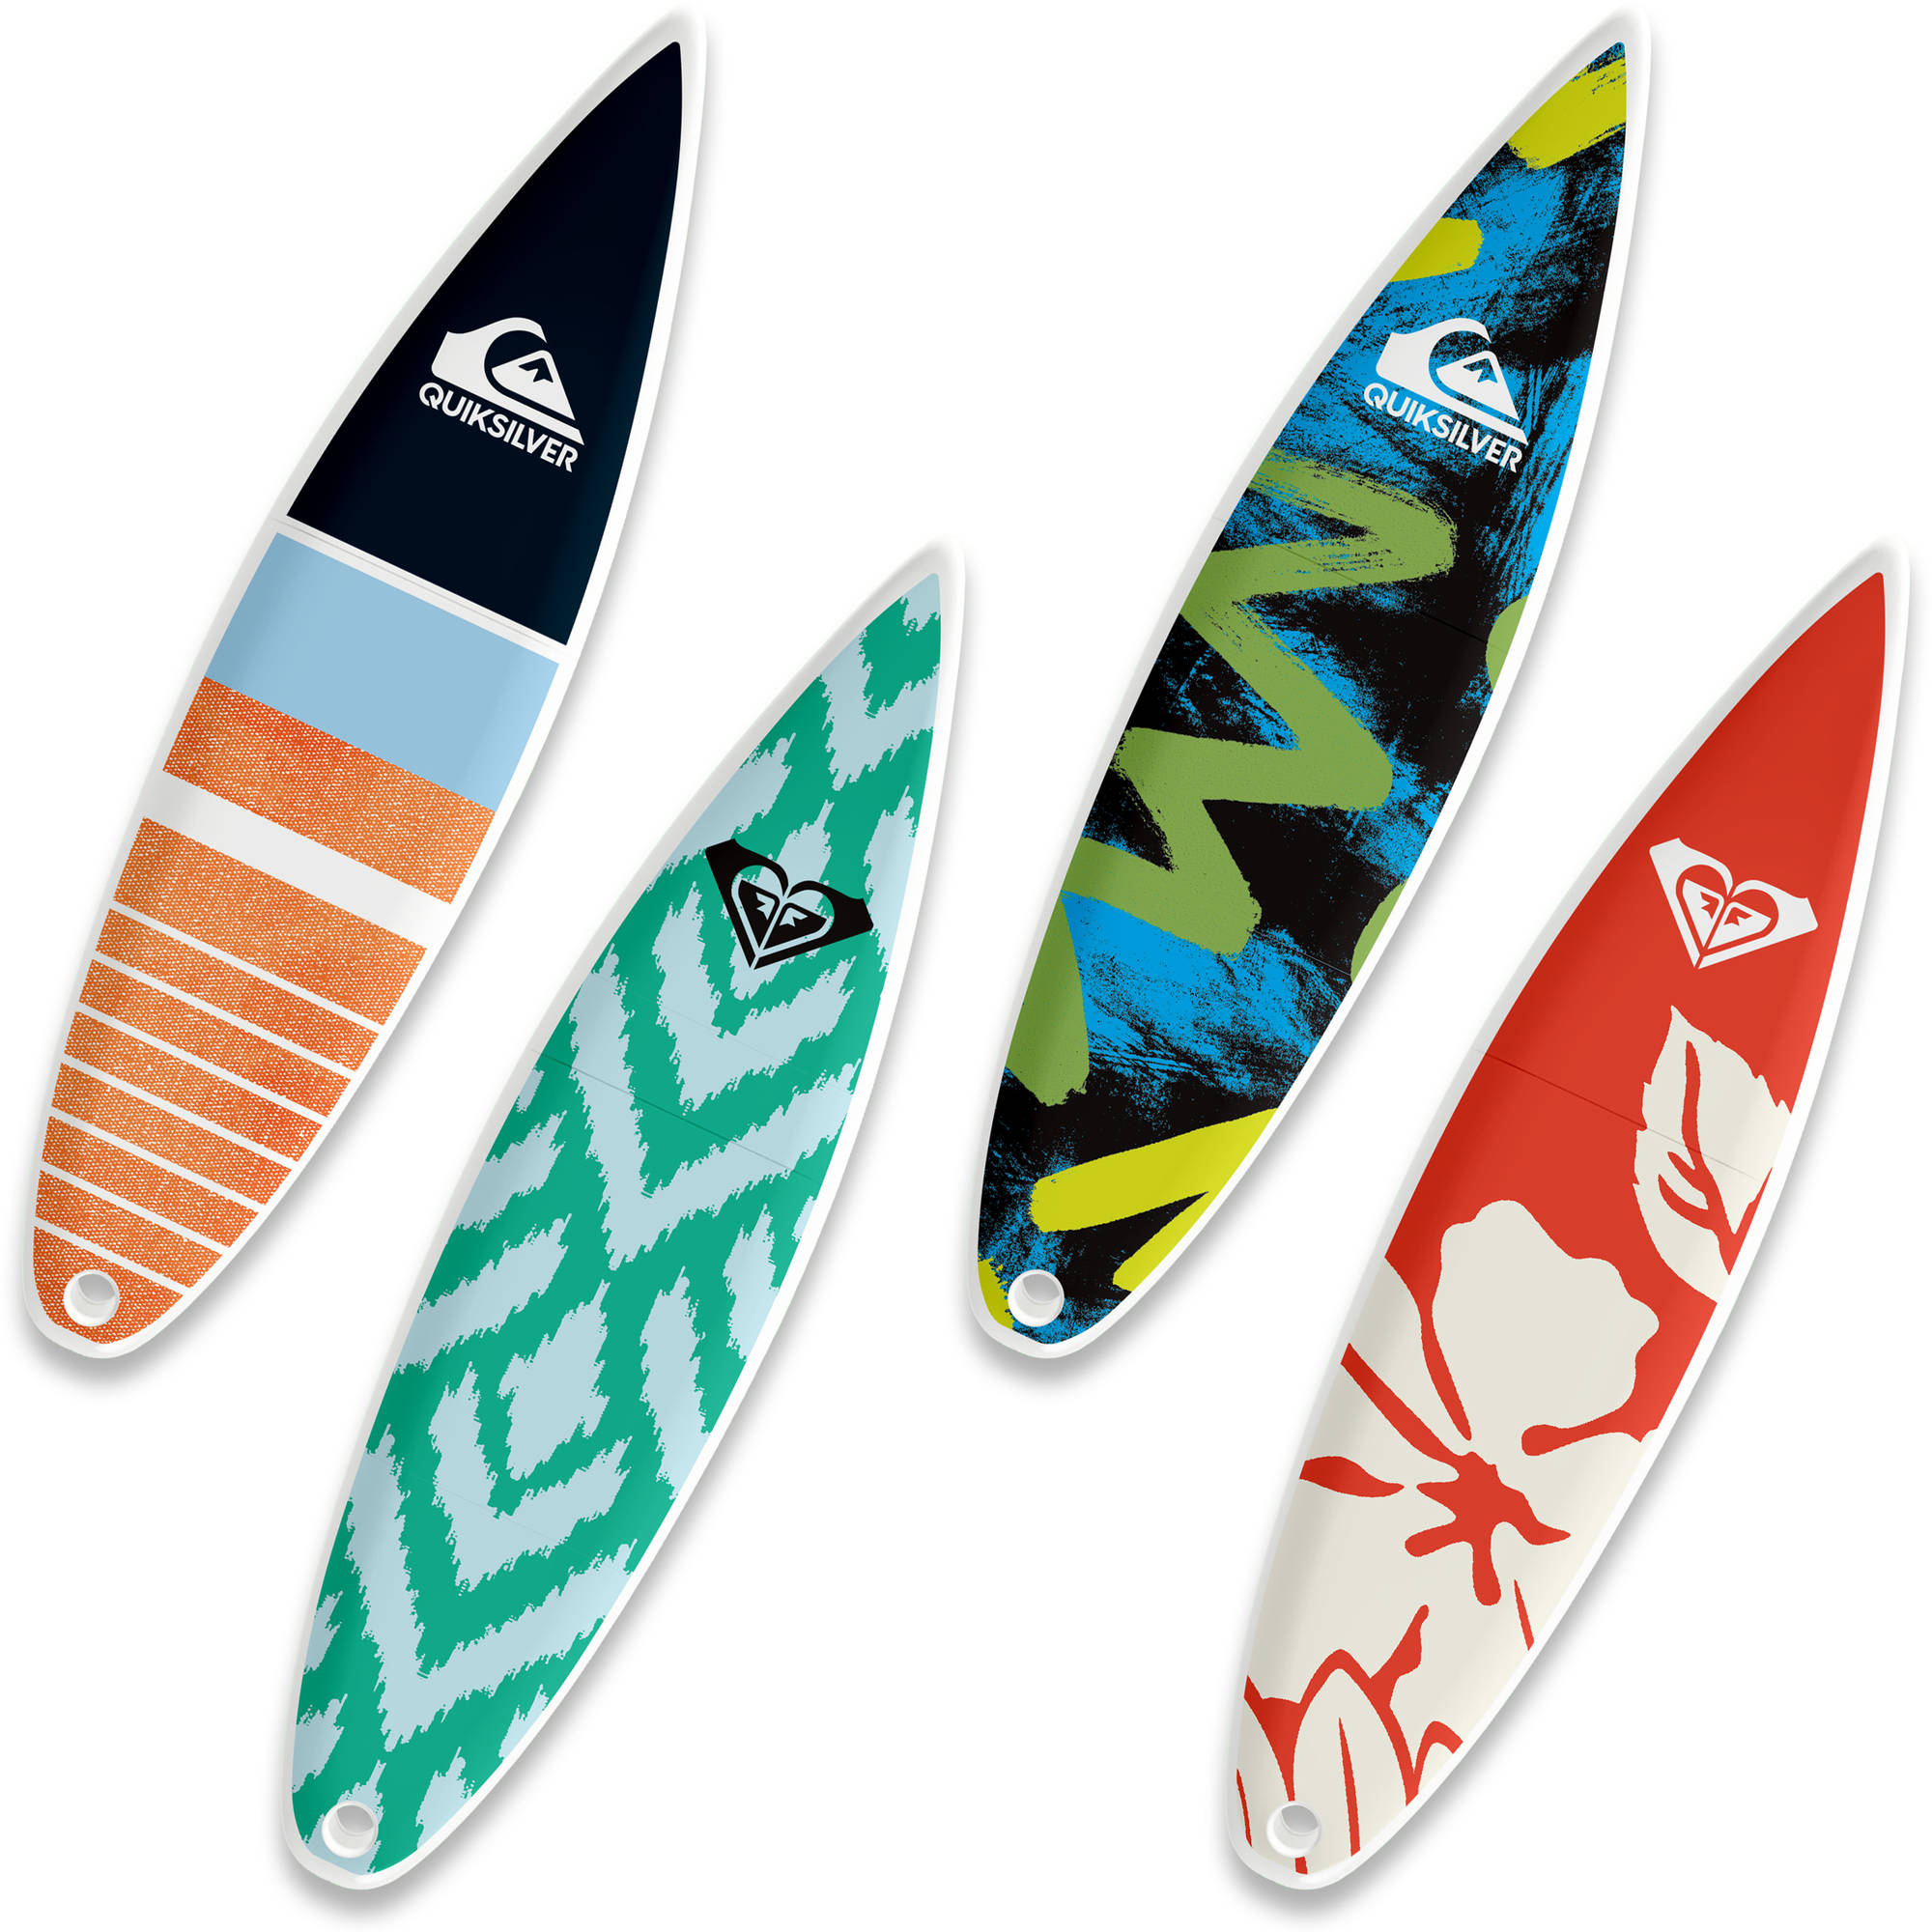 Image of 16GB EP ASD USB, Quiksilver SurfDrive and Roxy SurfDrive, 4-Pack